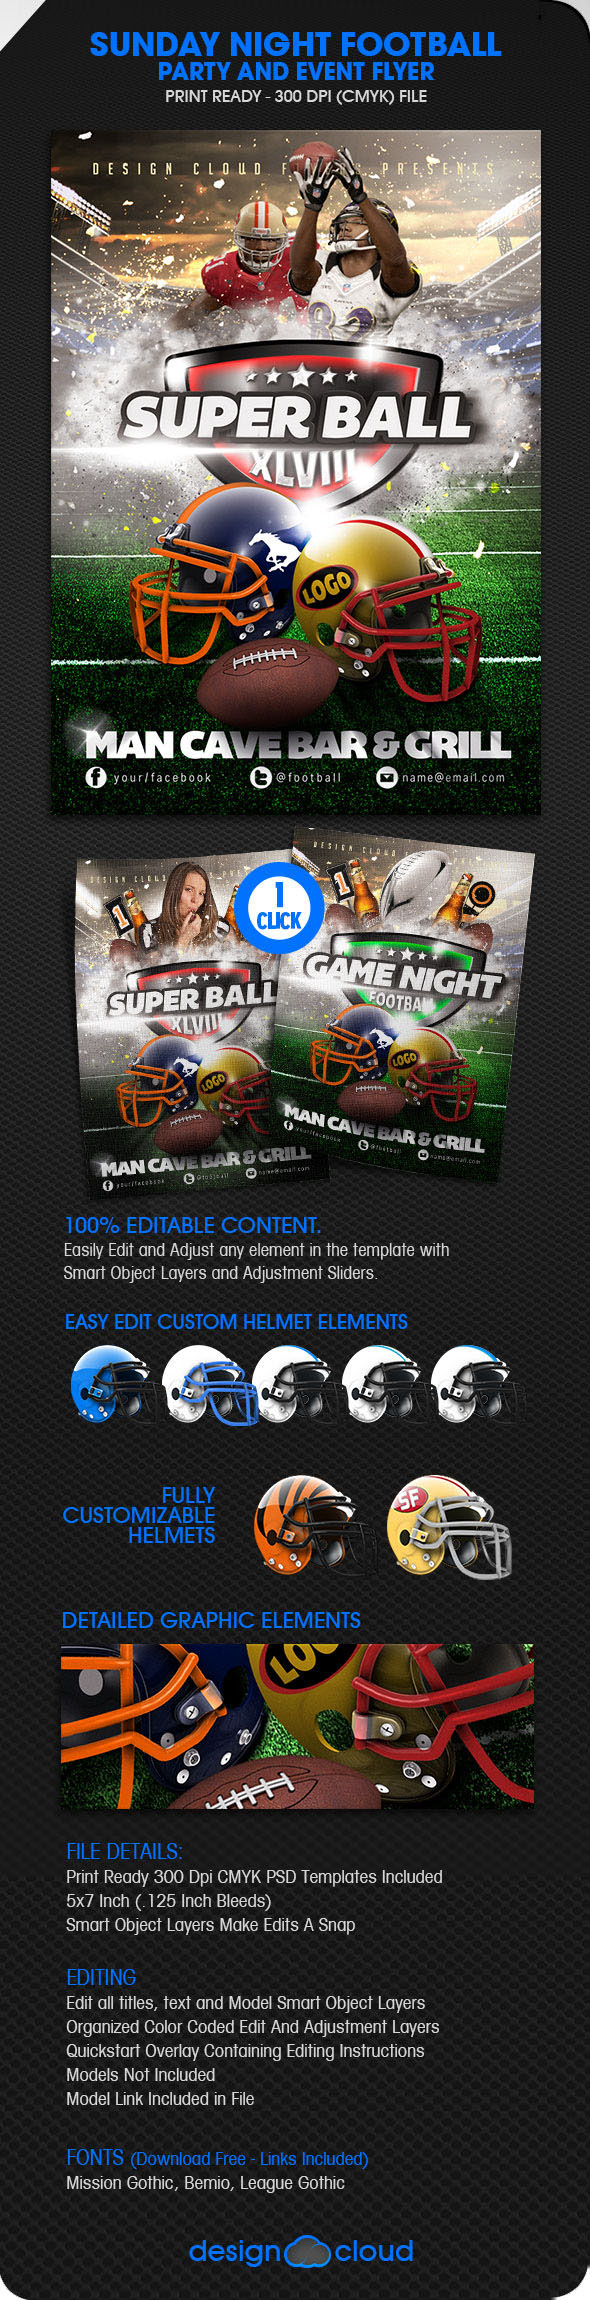 super bowl party flyer template aildoc productoseb co